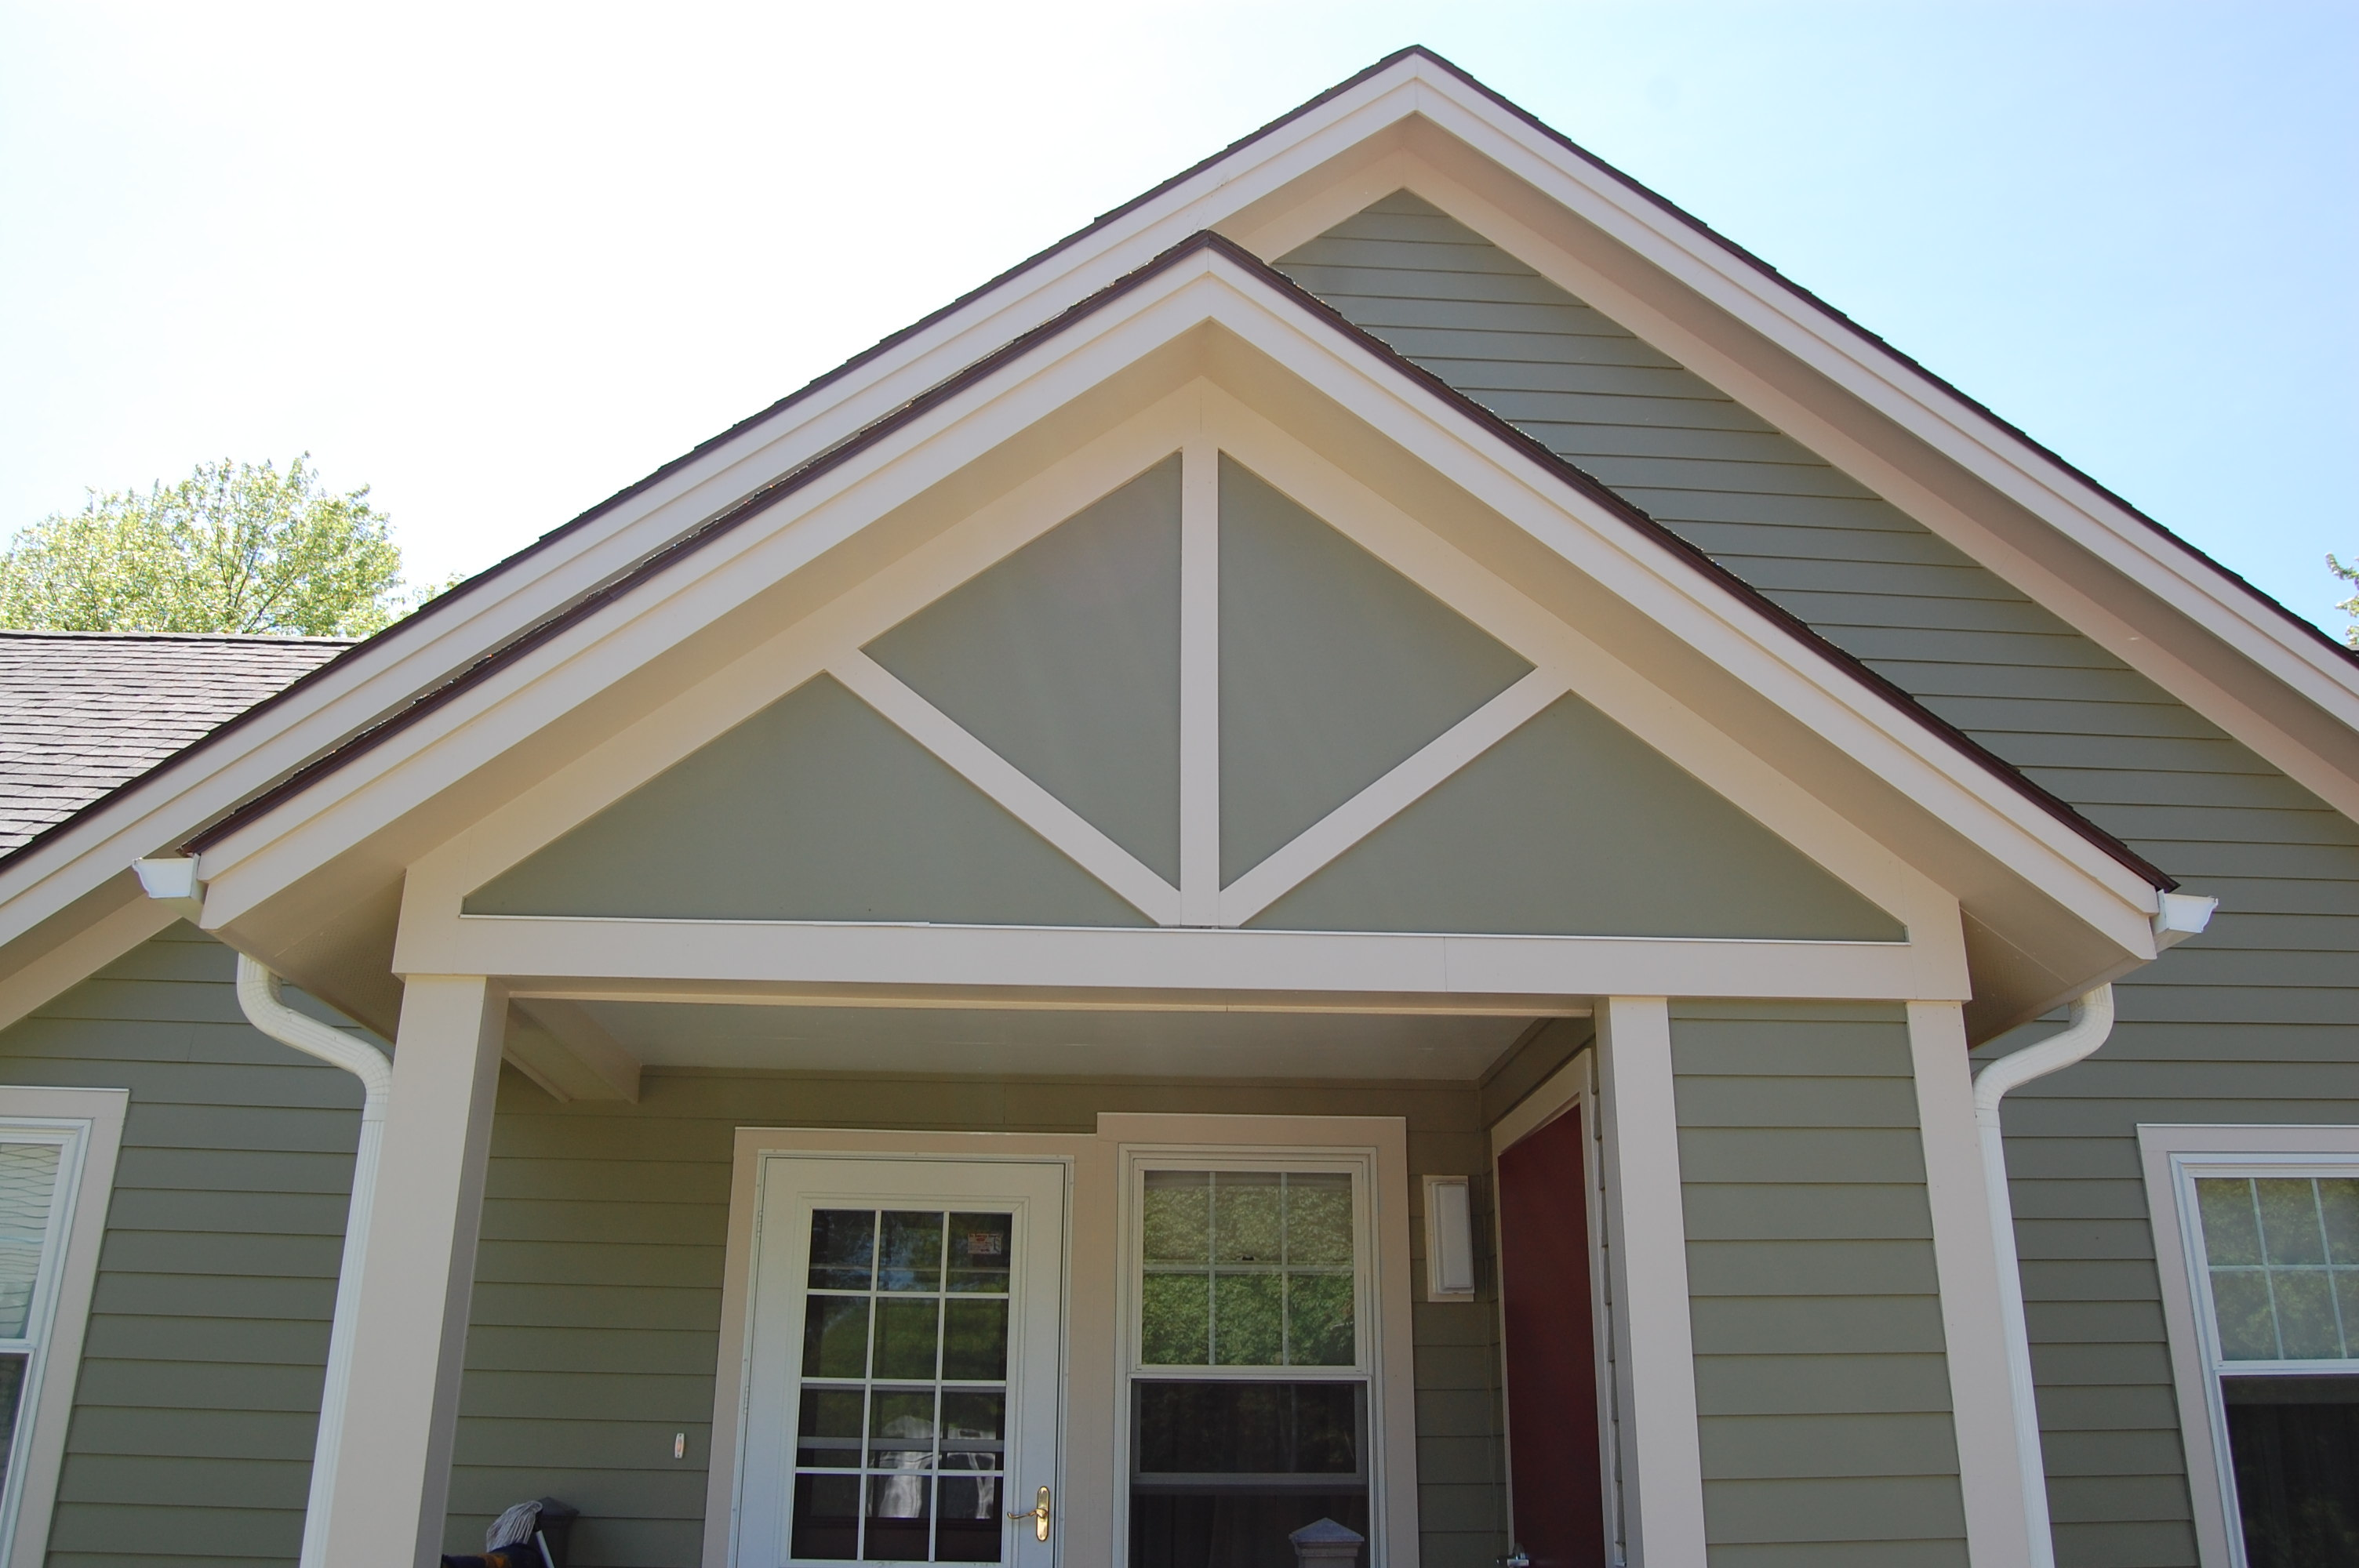 New Siding-Trim